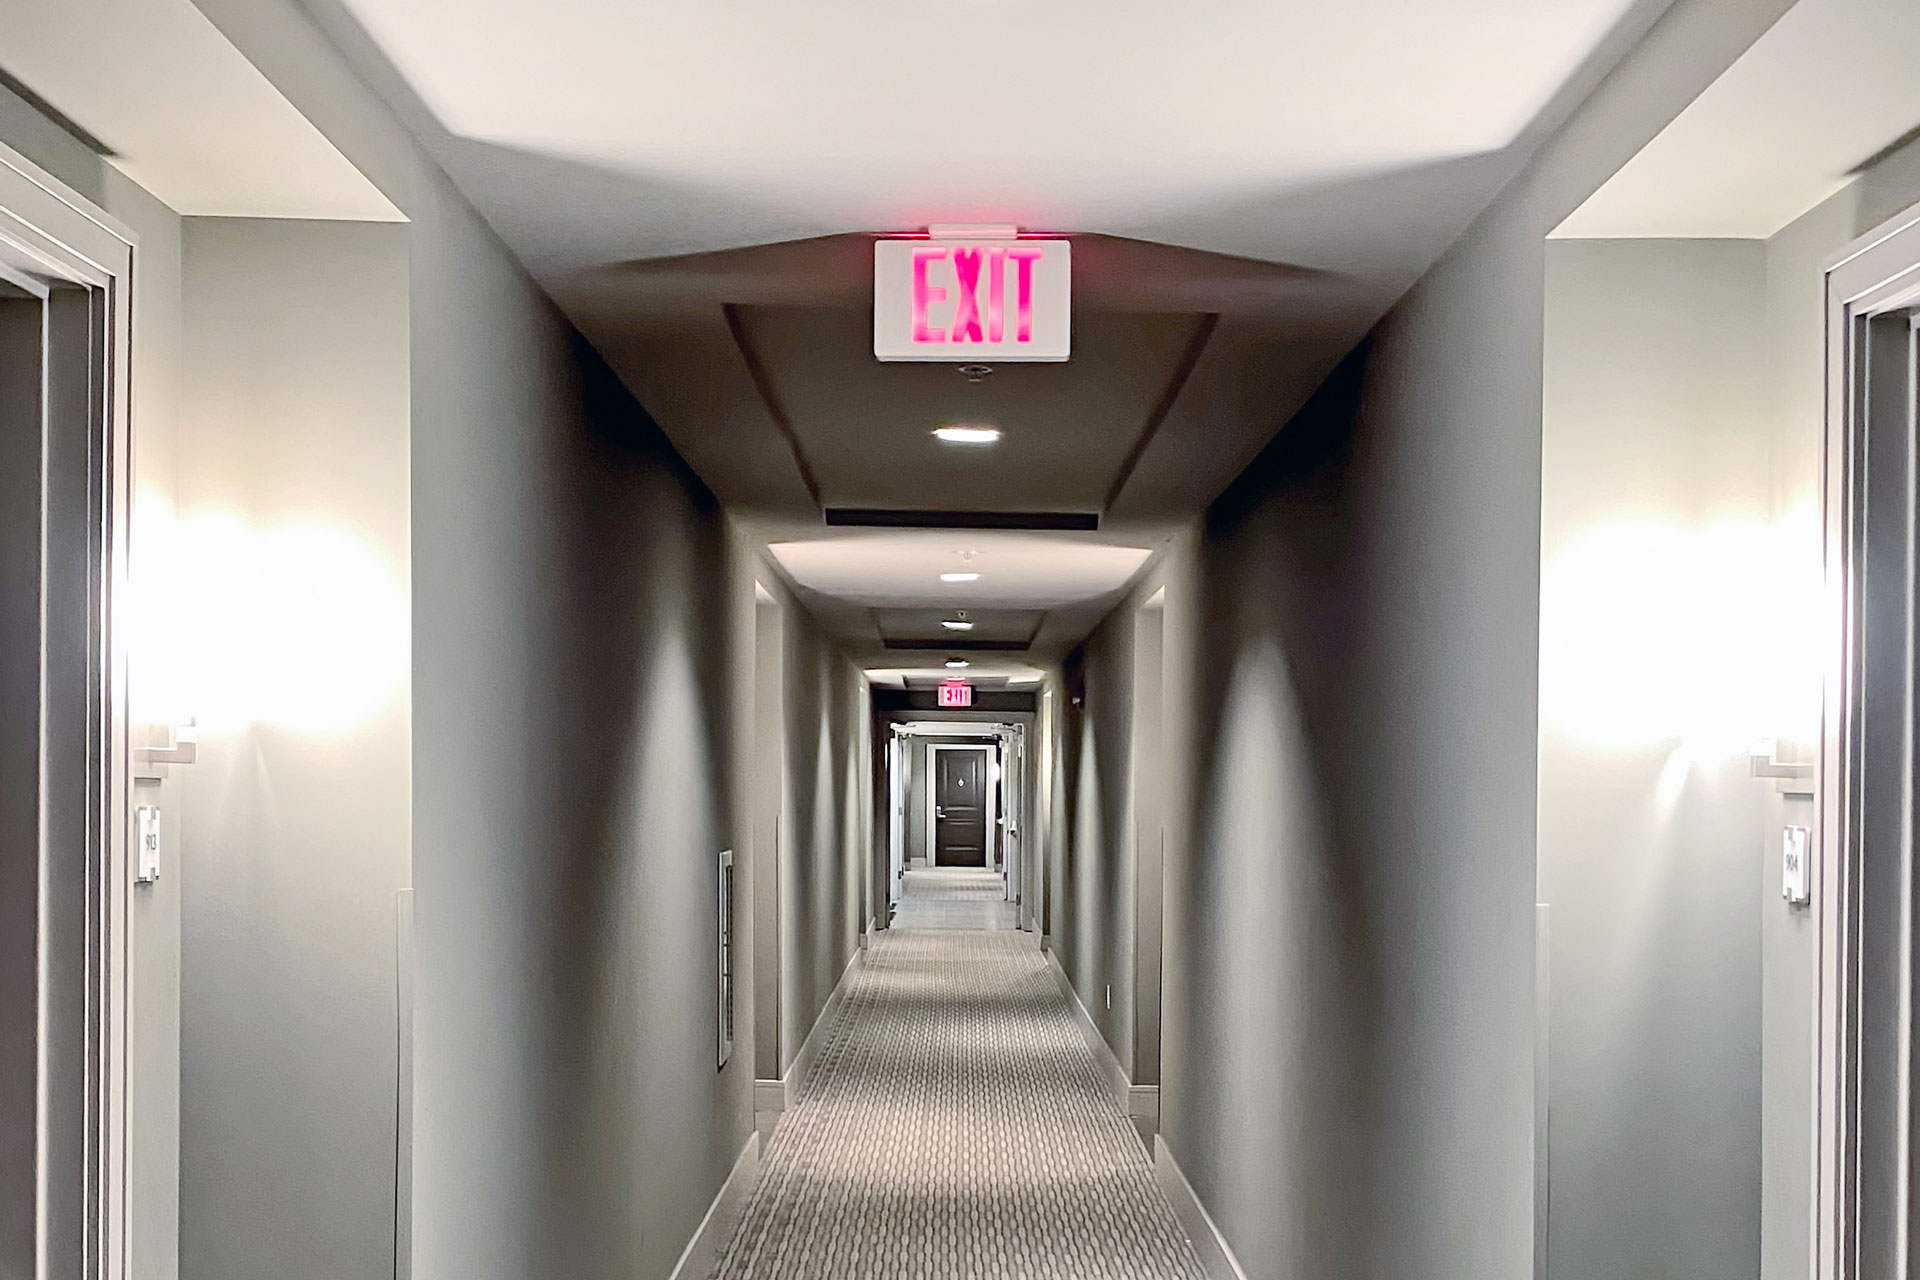 hallway with exit sign